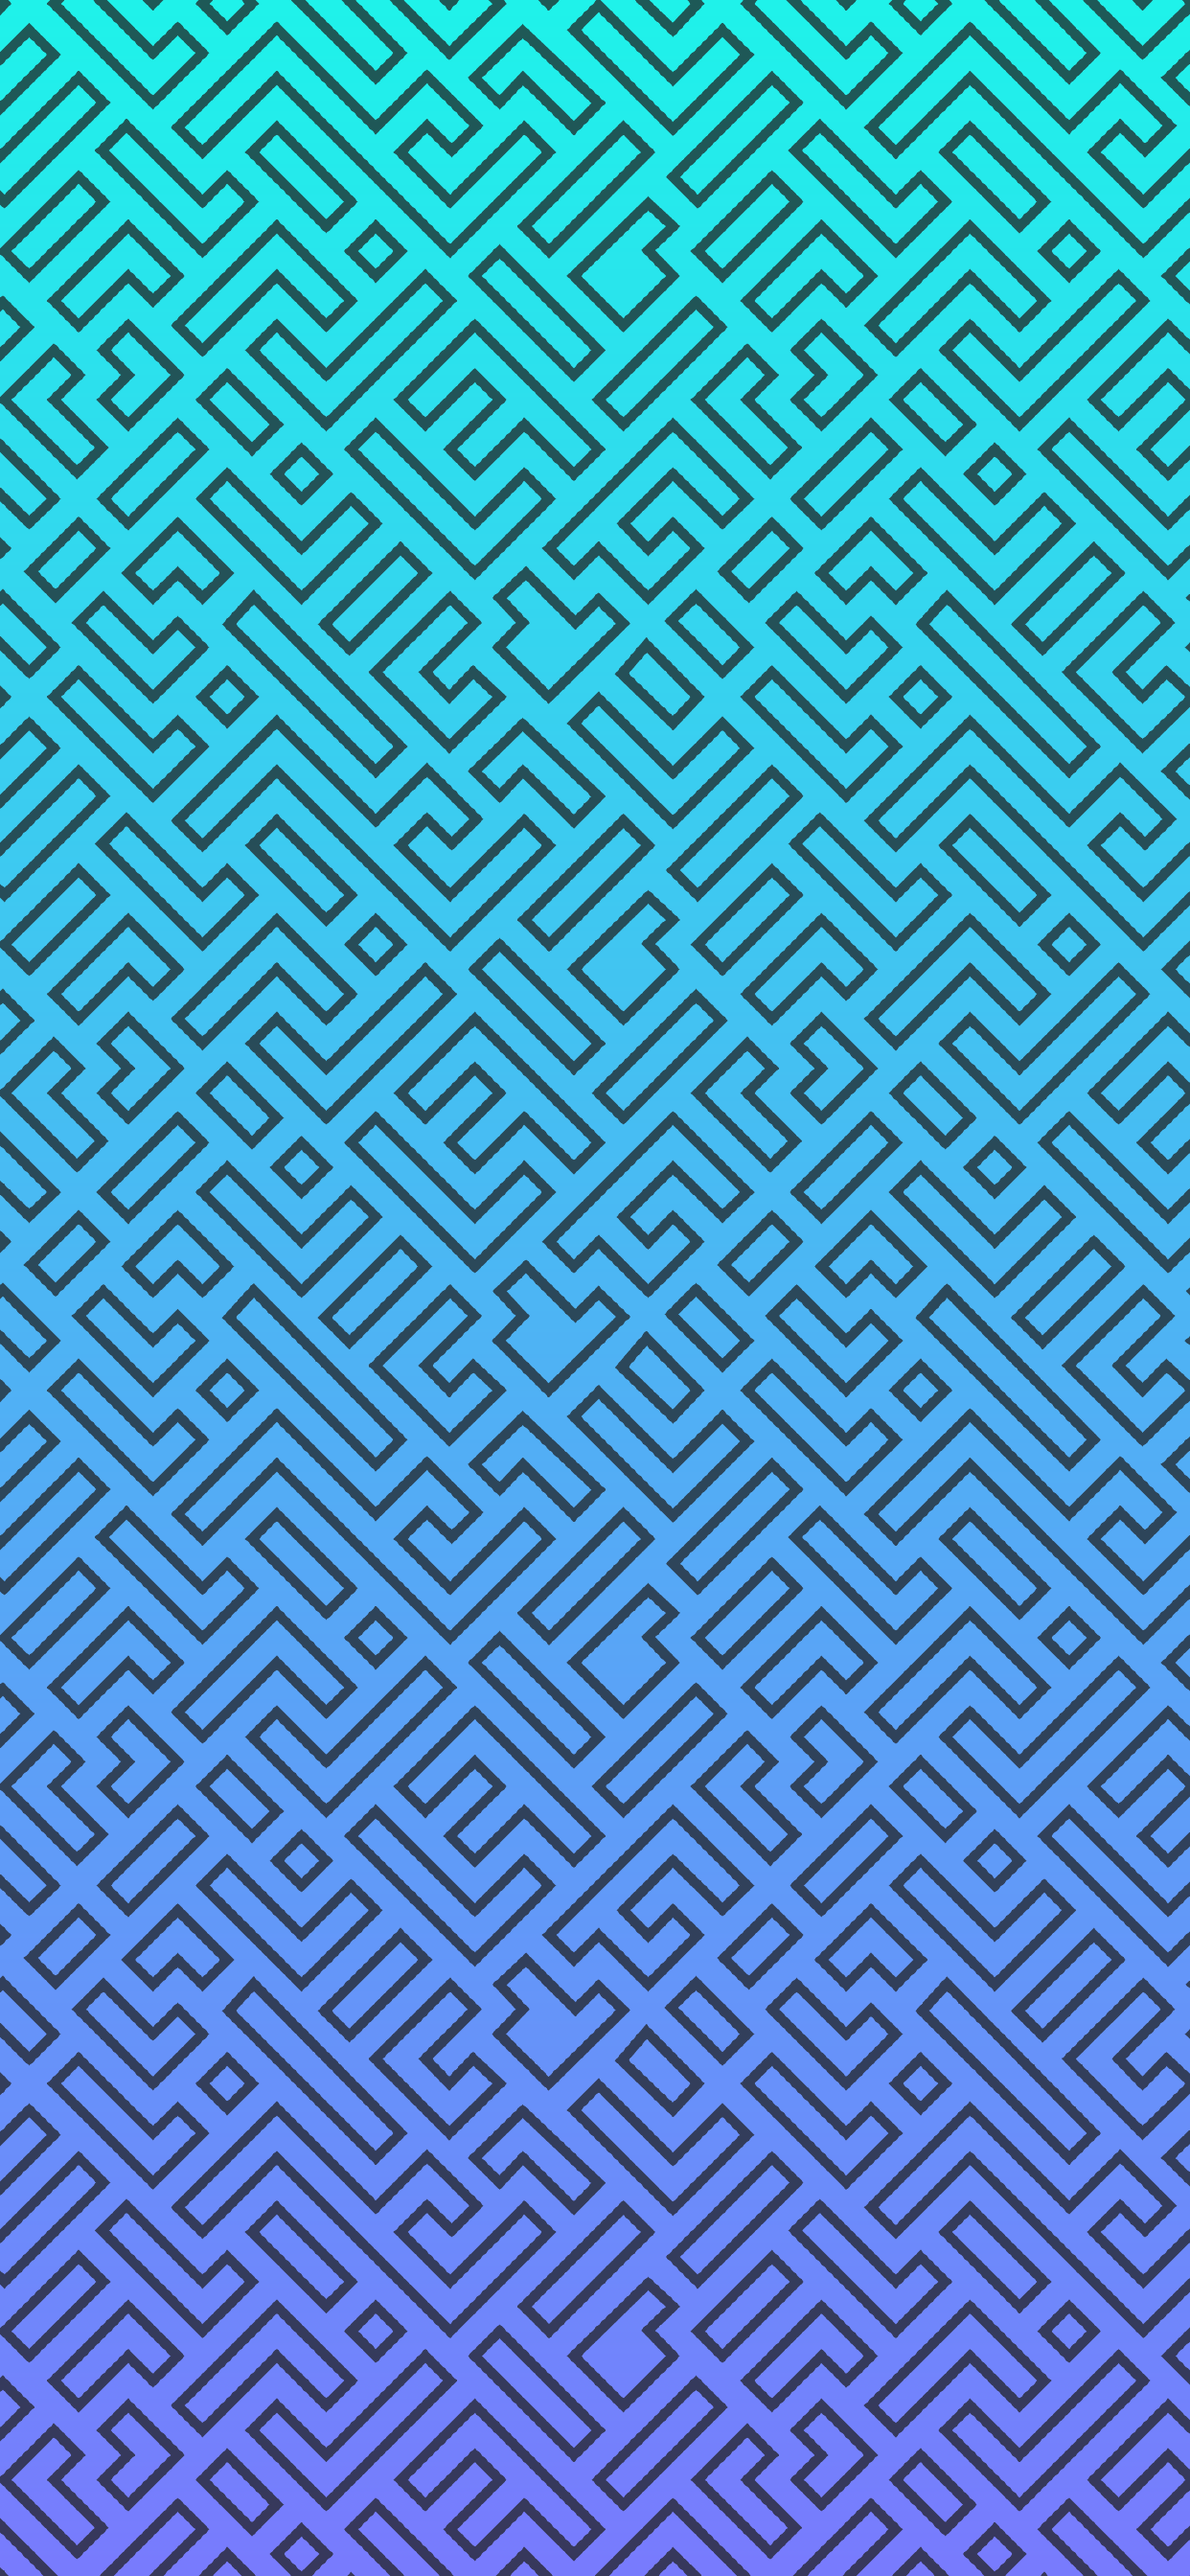 maze gradient lock screen for iphone hd